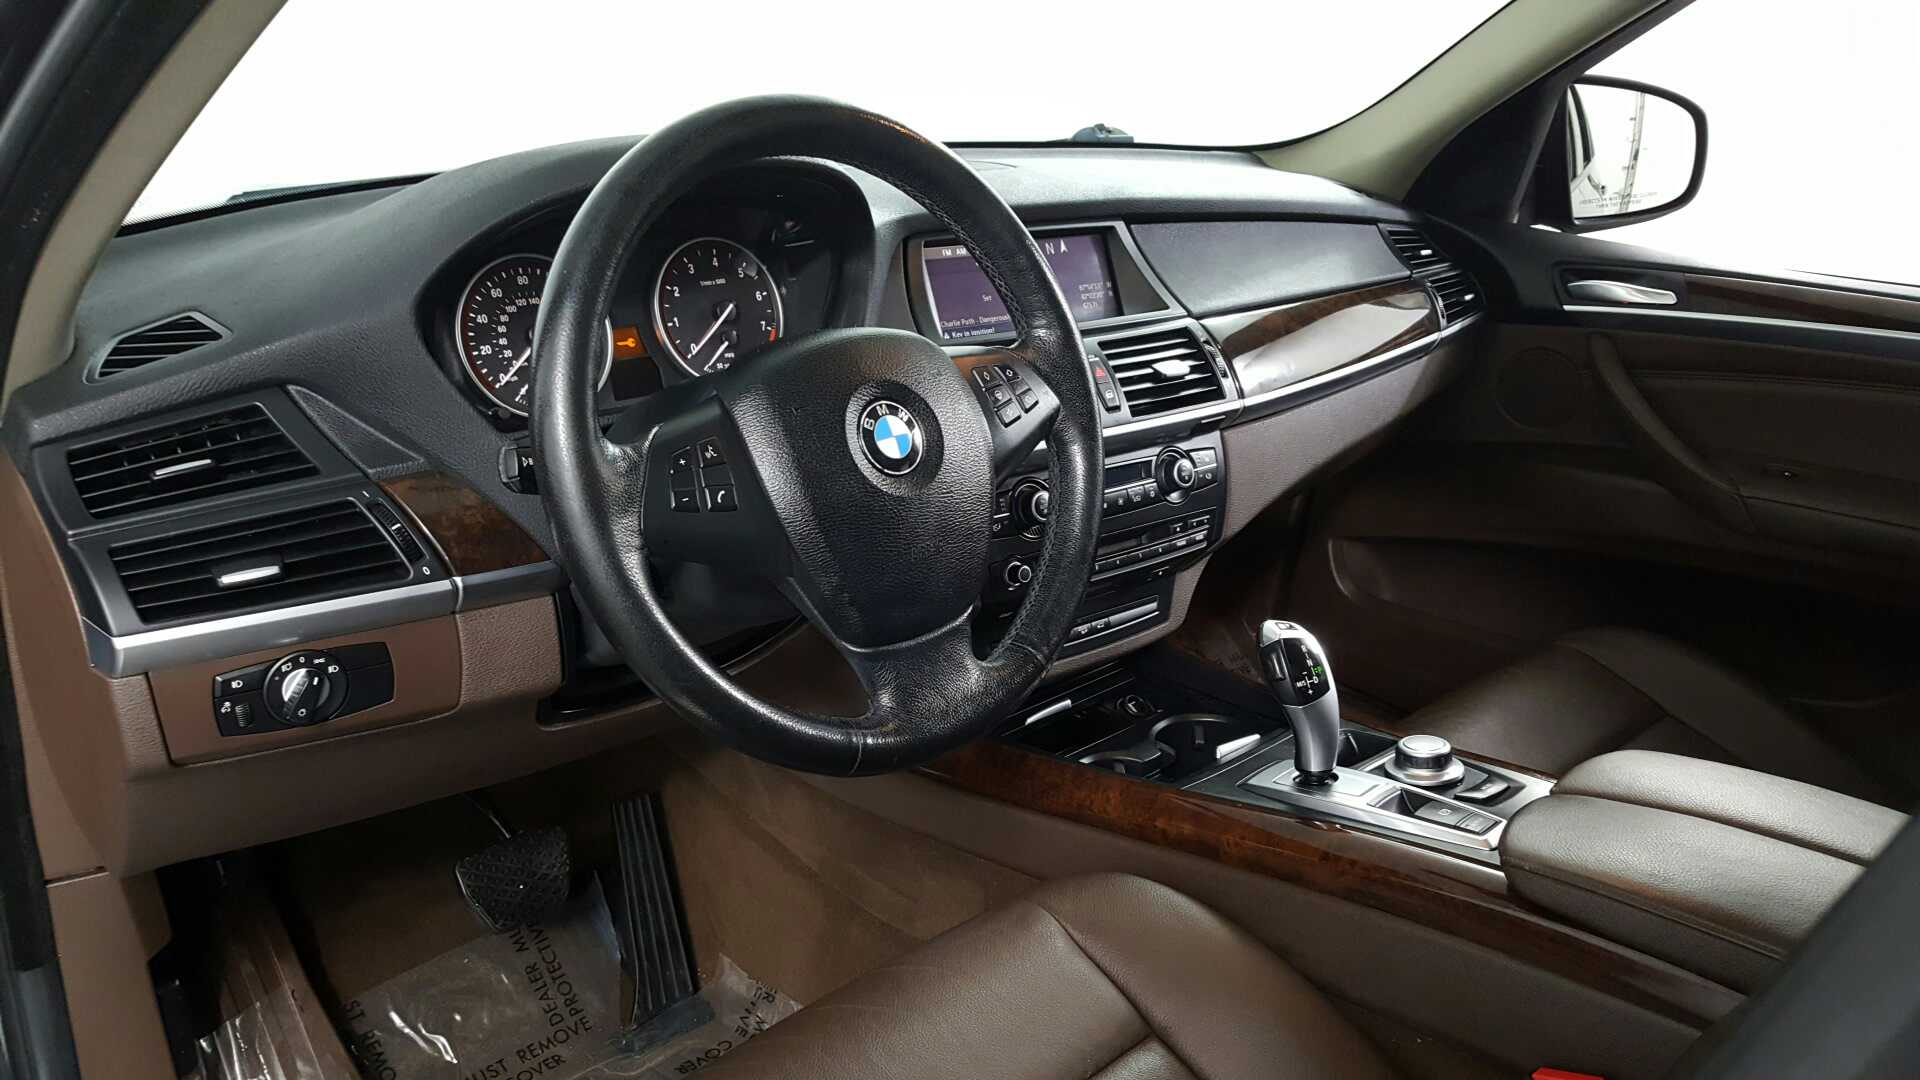 2009 BMW X5 xDrive30i - Jidd Motors